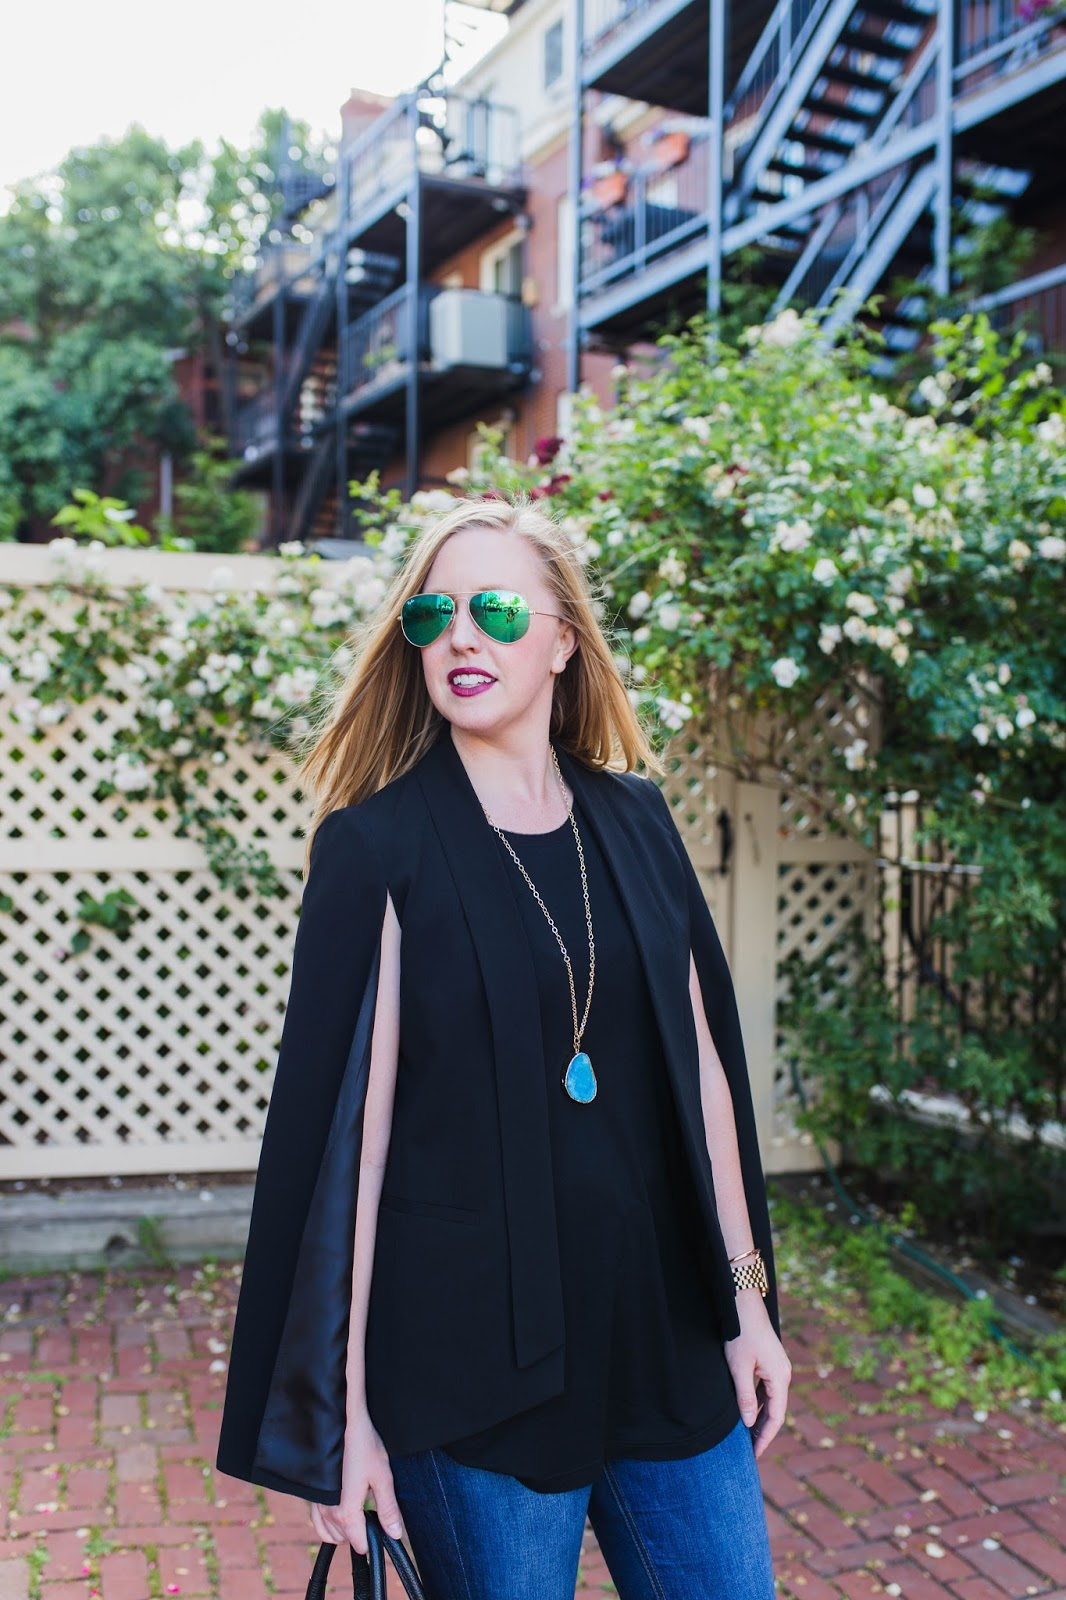 mural cape blazer, nordstrom cape blazer, black cape blazer, cape blazer summer, summer suit options, boston style blogger, boston fashion blogger, summer suits, charlestown style blog